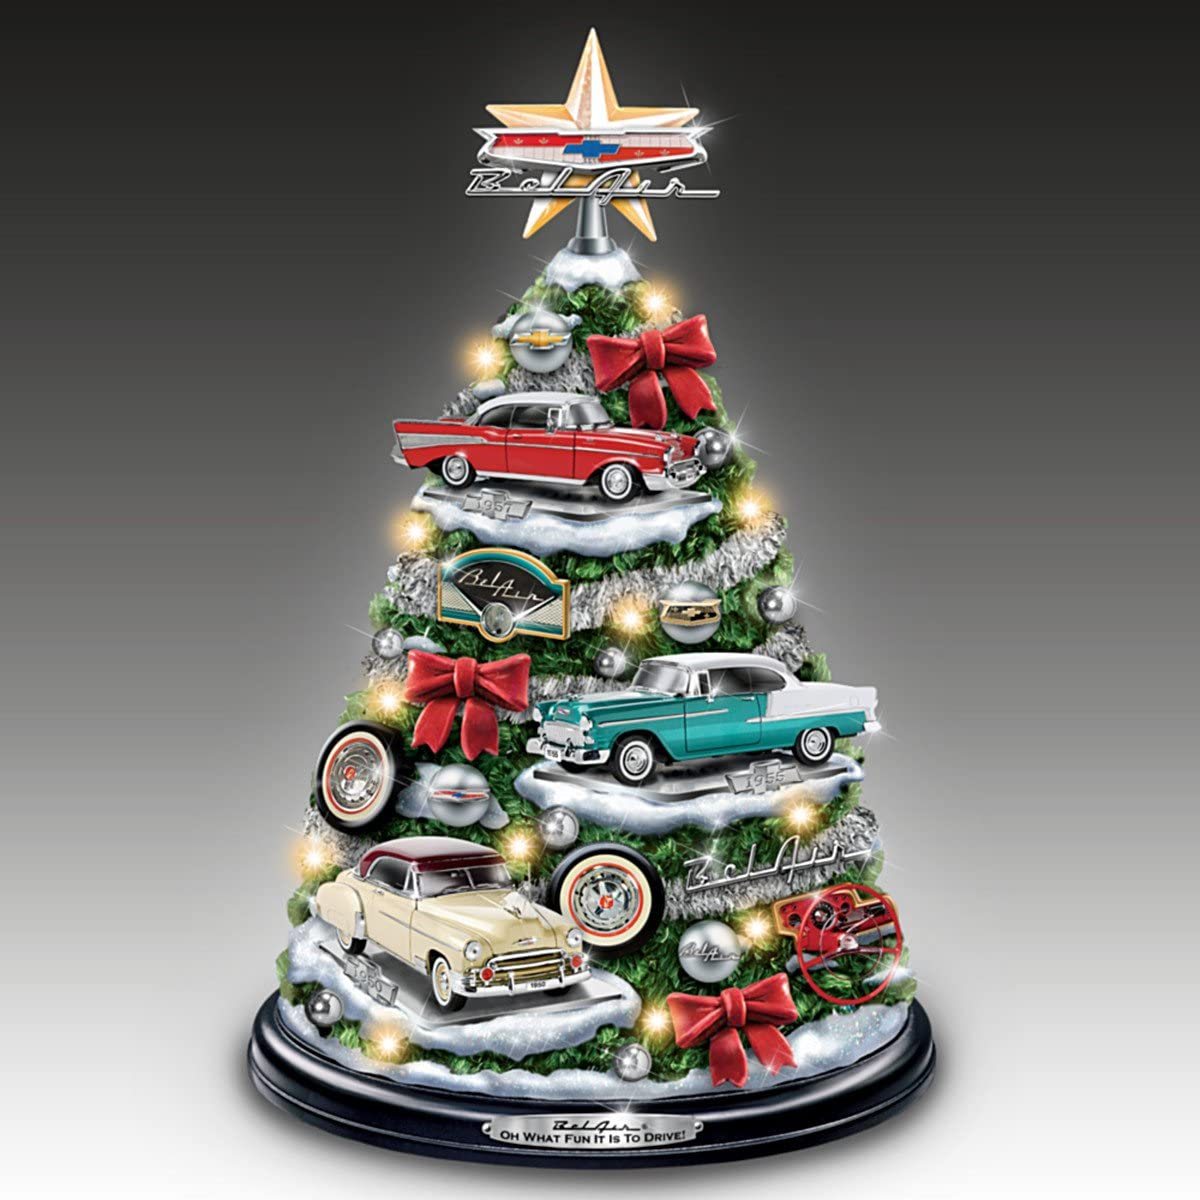 The Bradford Exchange Chevrolet Bel Air Tabletop Christmas Tree with Revving Engine Sound Lights Up